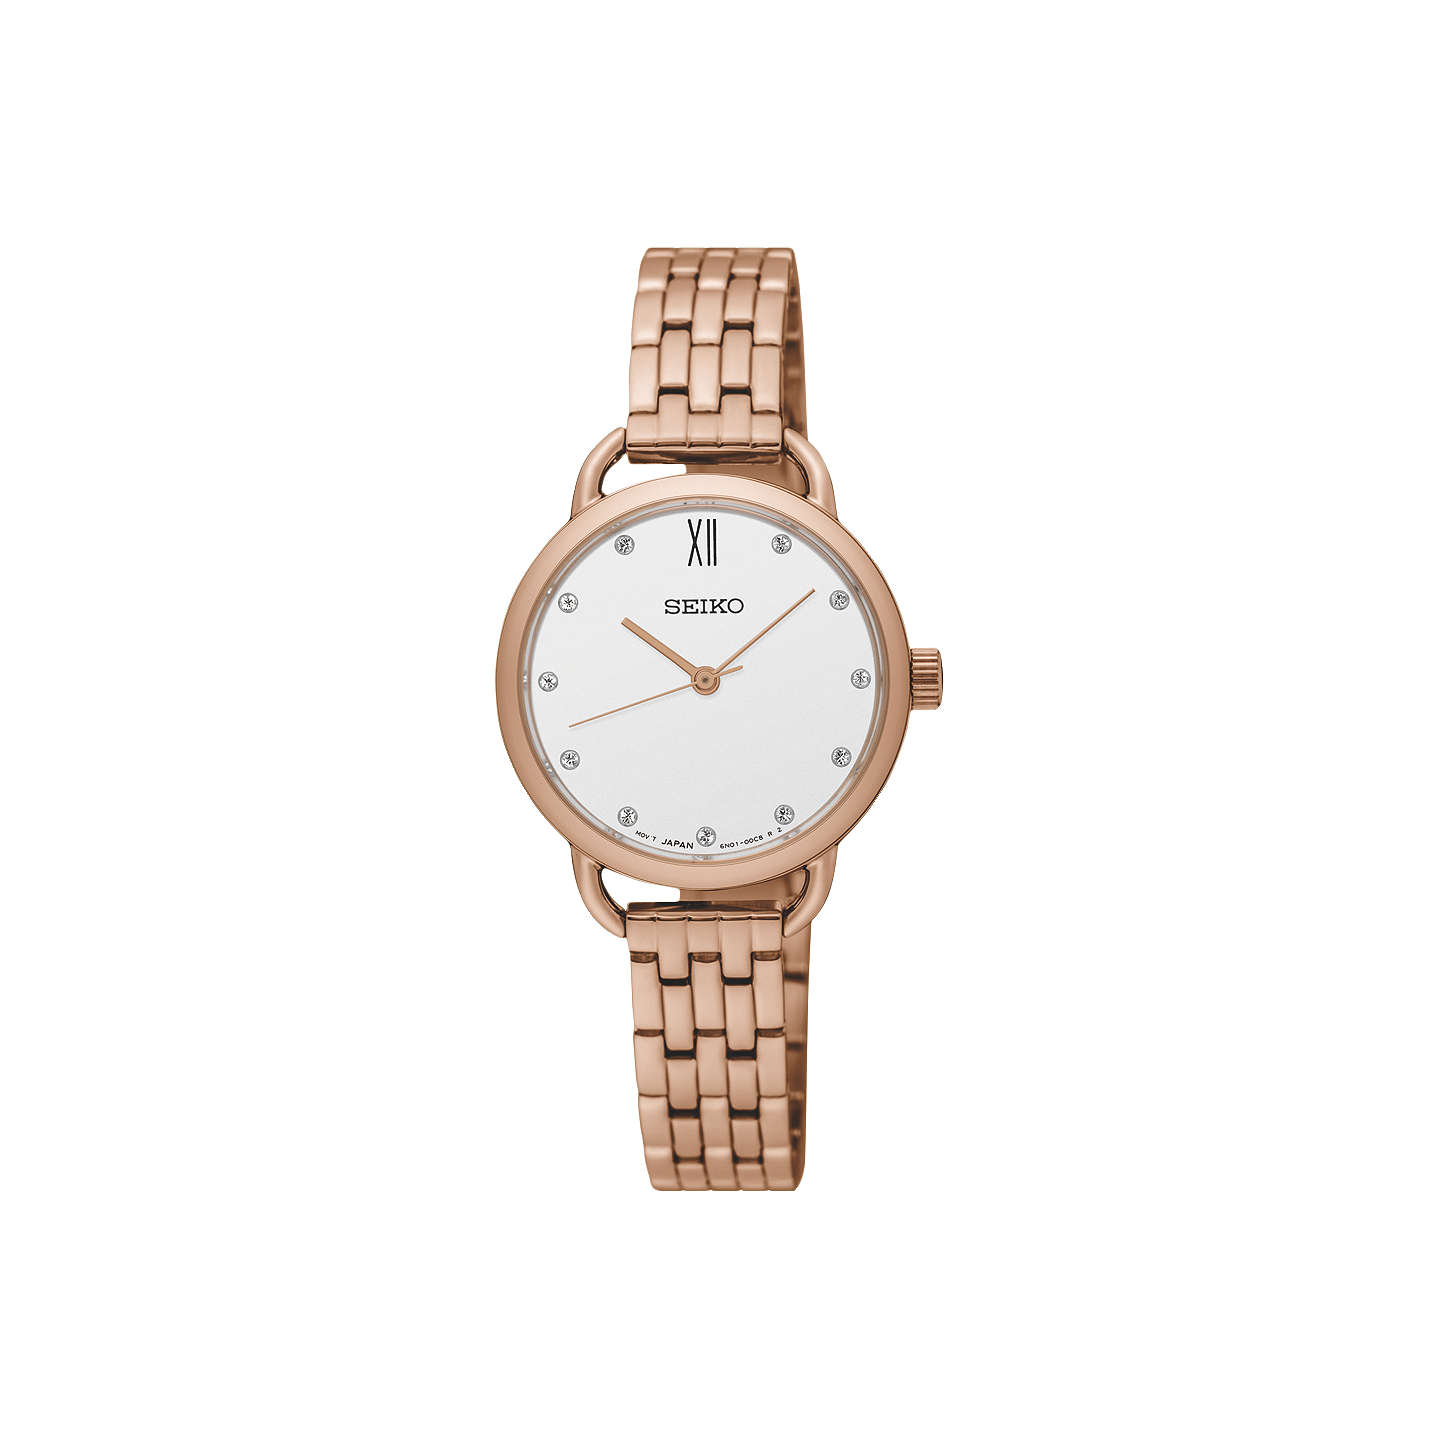 bracelet buyemporio online pdp rsp women at silver emporio armani johnlewis watch white strap main watches s crystal